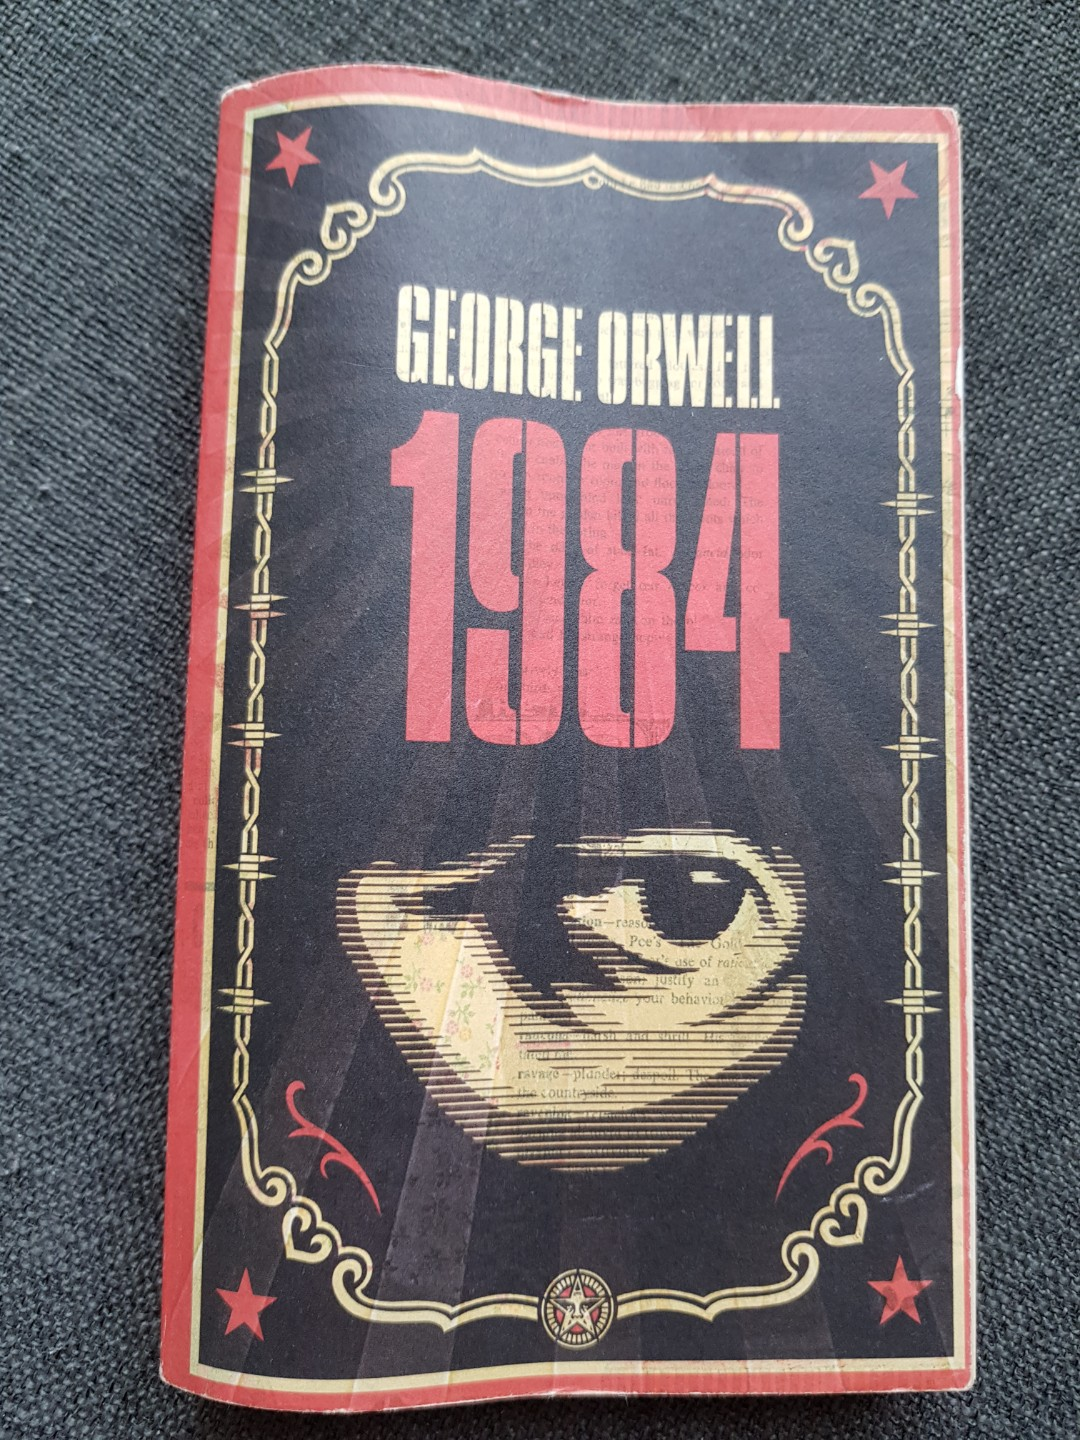 1984 By George Orwell Books Stationery Fiction On Carousell